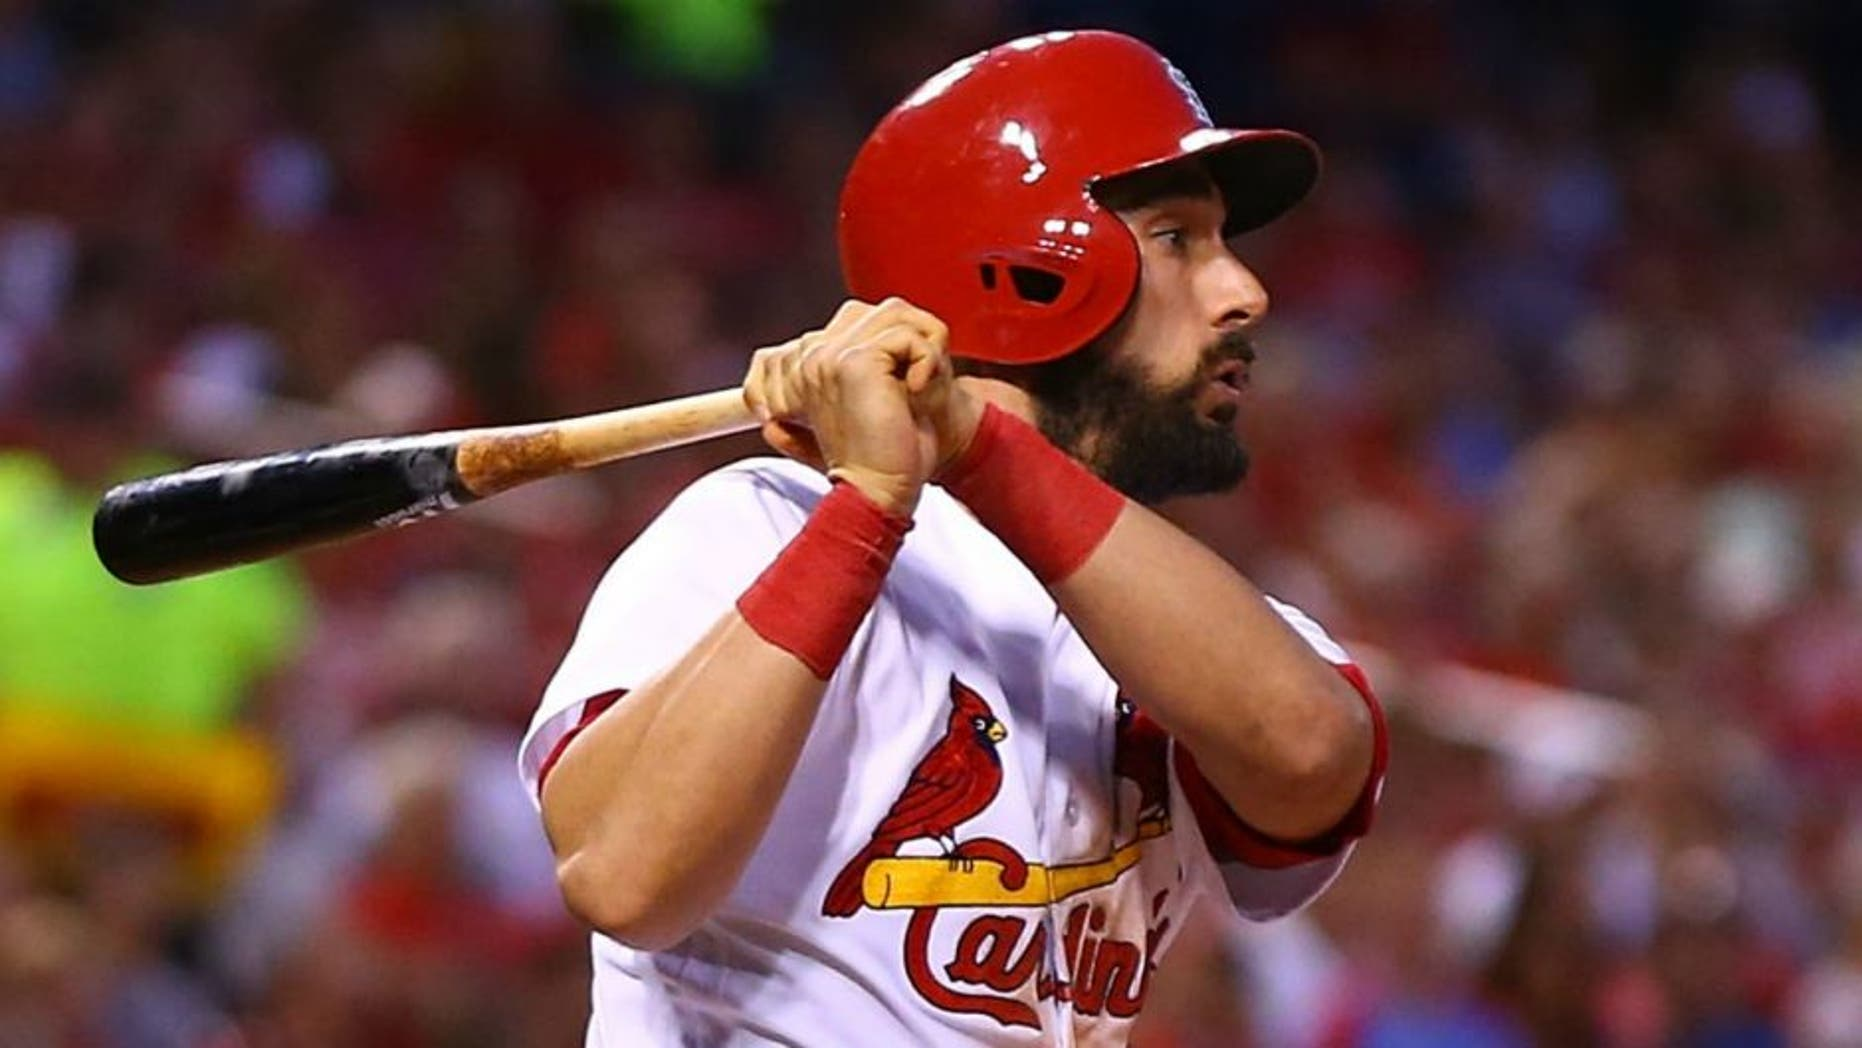 ST. LOUIS, MO - JULY 1: Matt Carpenter #13 of the St. Louis Cardinals hits an RBI single against the Milwaukee Brewers in the fourth inning at Busch Stadium on July 1, 2016 in St. Louis, Missouri. (Photo by Dilip Vishwanat/Getty Images)